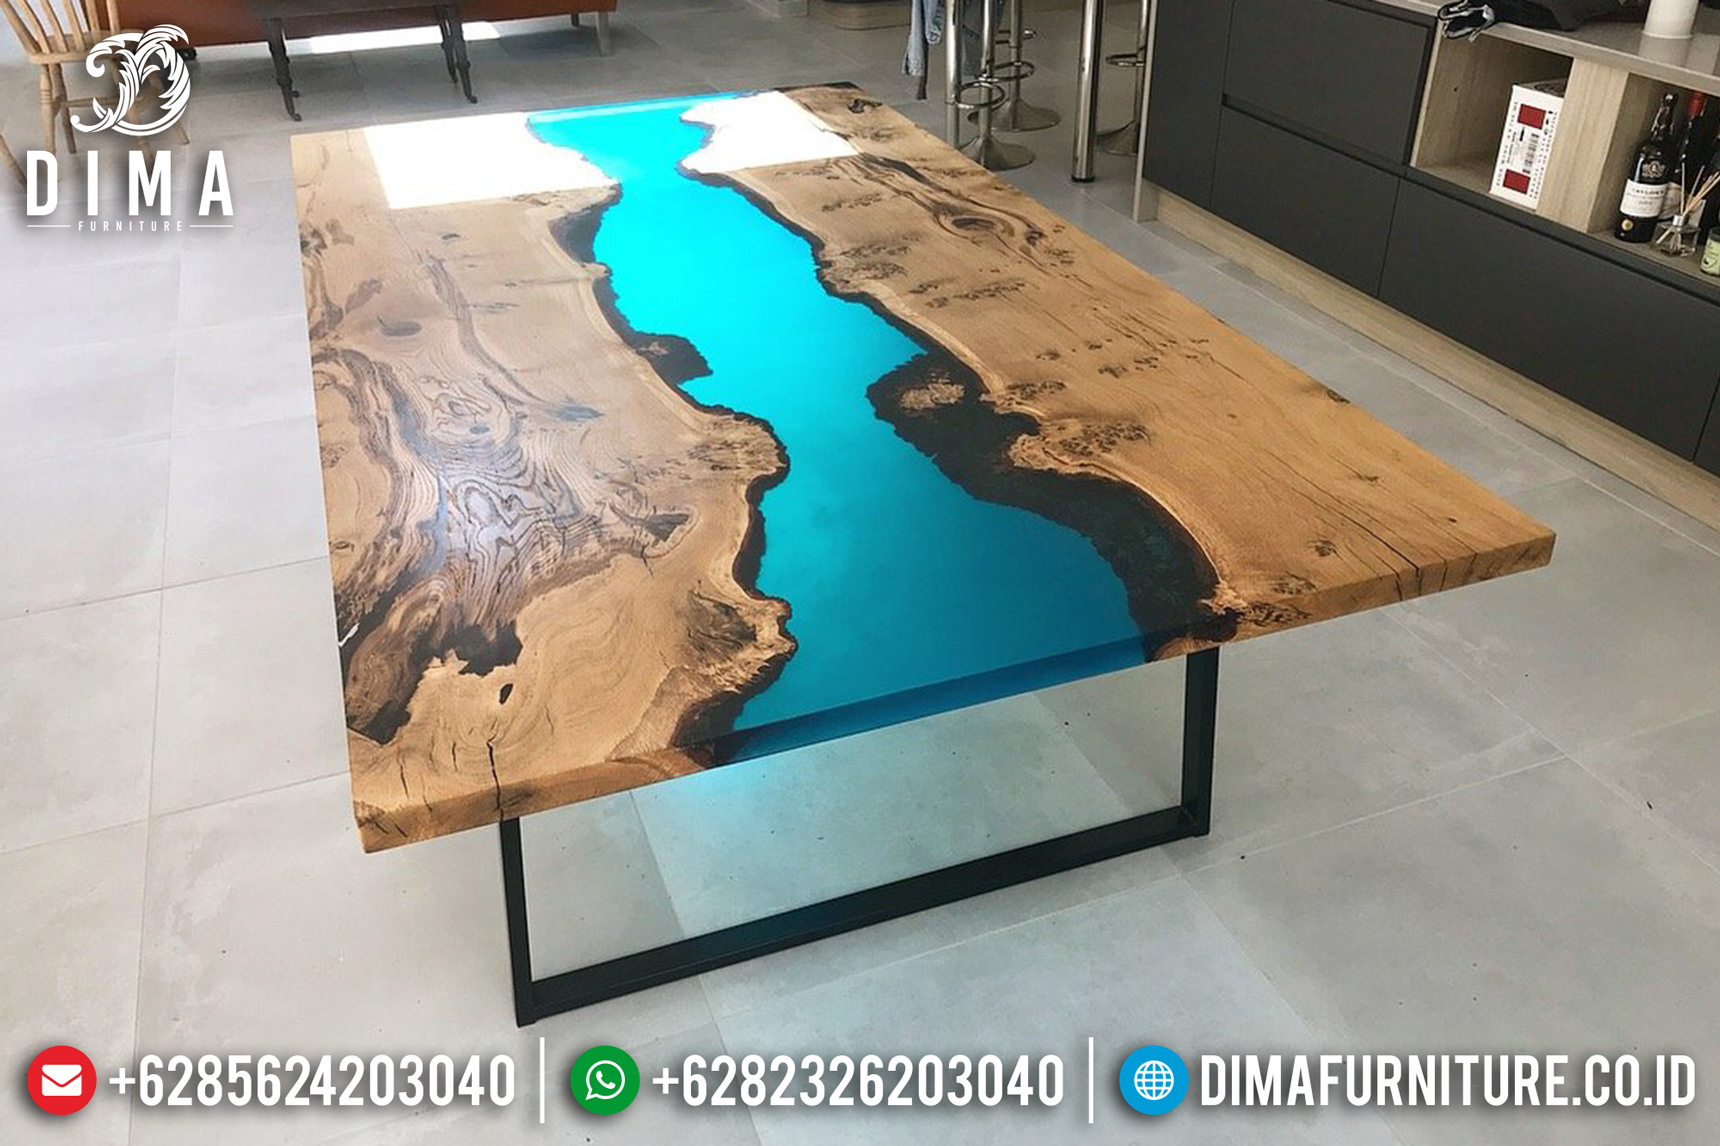 Meja Resin Minimalis Industrial, Furniture Indonesia, Resin Furniture ST-0647